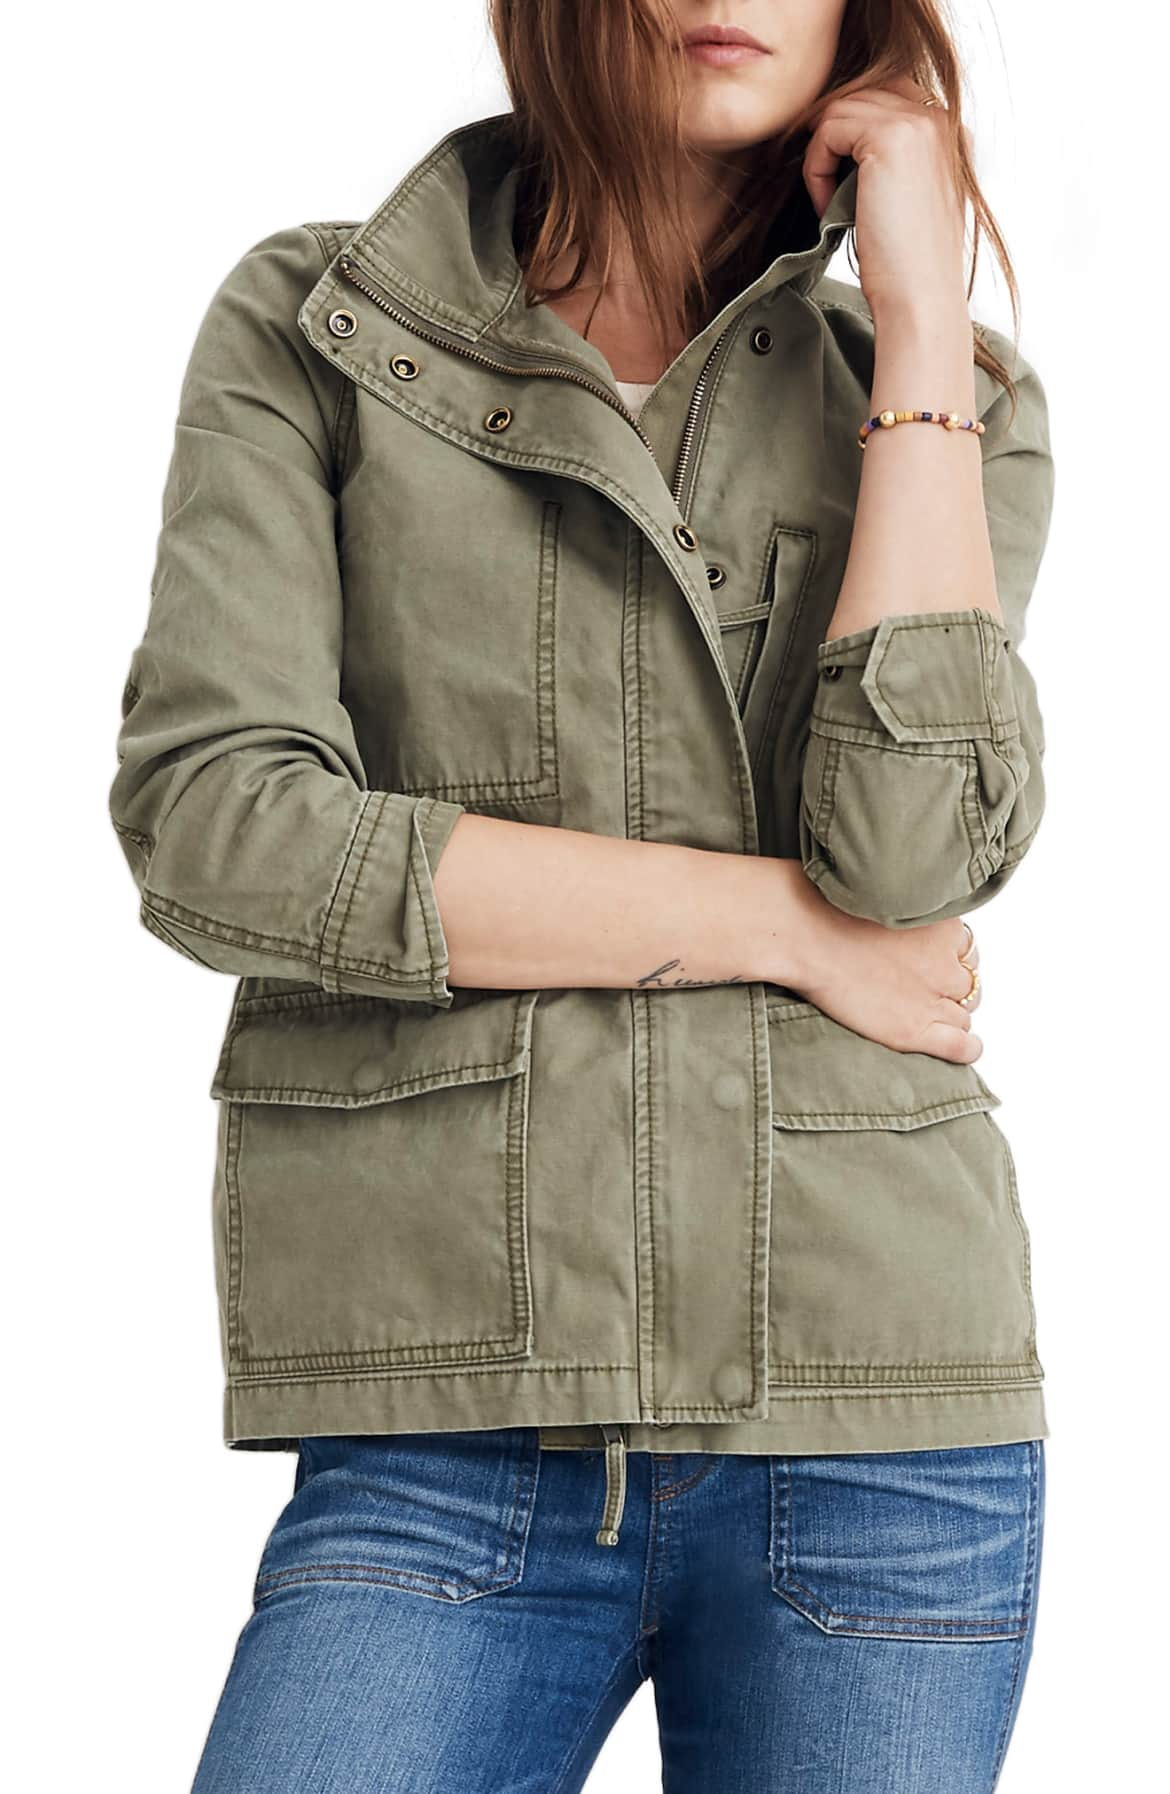 Utilitarian style shows its softer side in a modern version of the surplus jacket that's outfitted with plenty of pockets and neatly cinched at the waist. $118 (Image: Nordstrom){ }